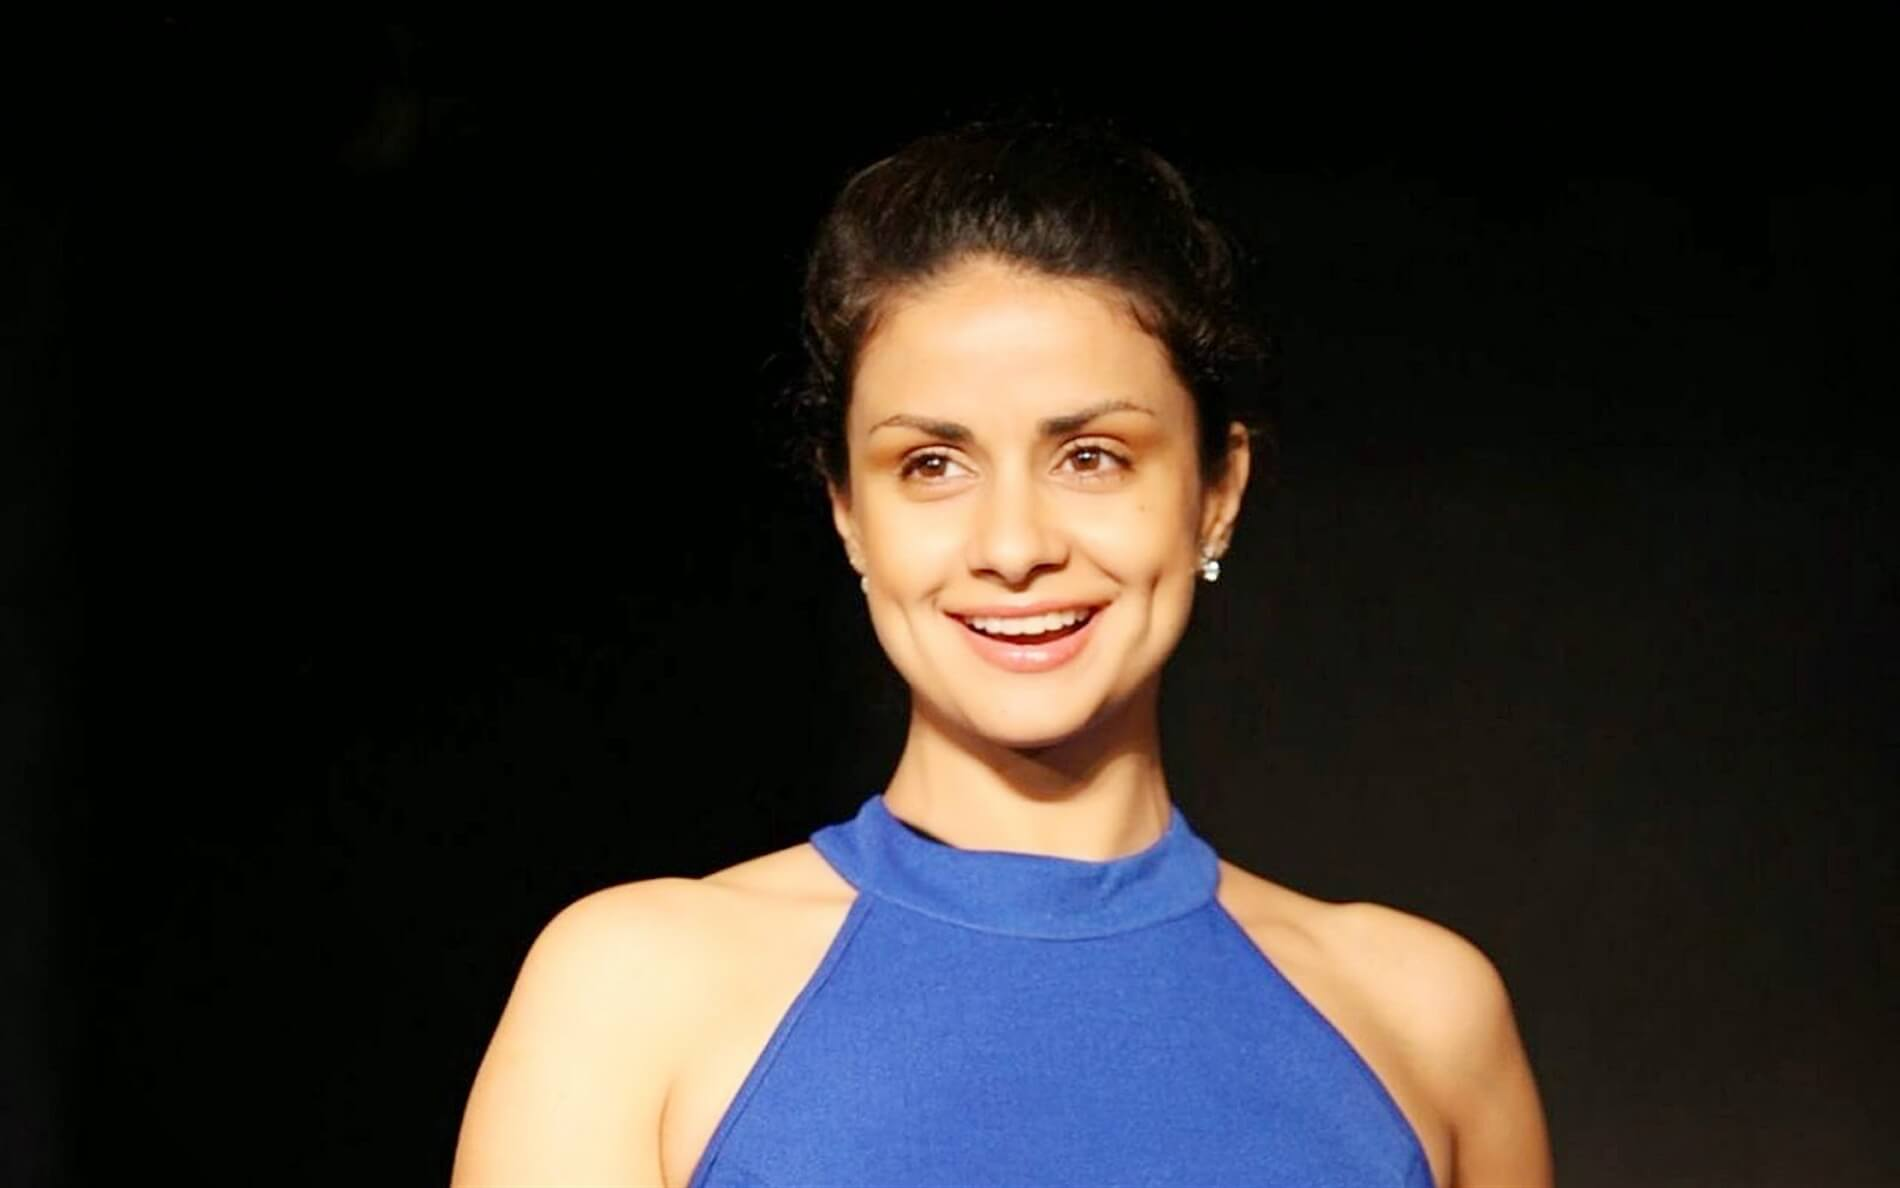 Gul Panag Age, Husband, Education, Pilot, Height, Father, Biography, Height, Son, Haircut, Images, Wedding, Family, Religion, Net Worth, Wiki, Twitter, Instagram, Facebook, Youtube, Website, Imdb (3) (1)